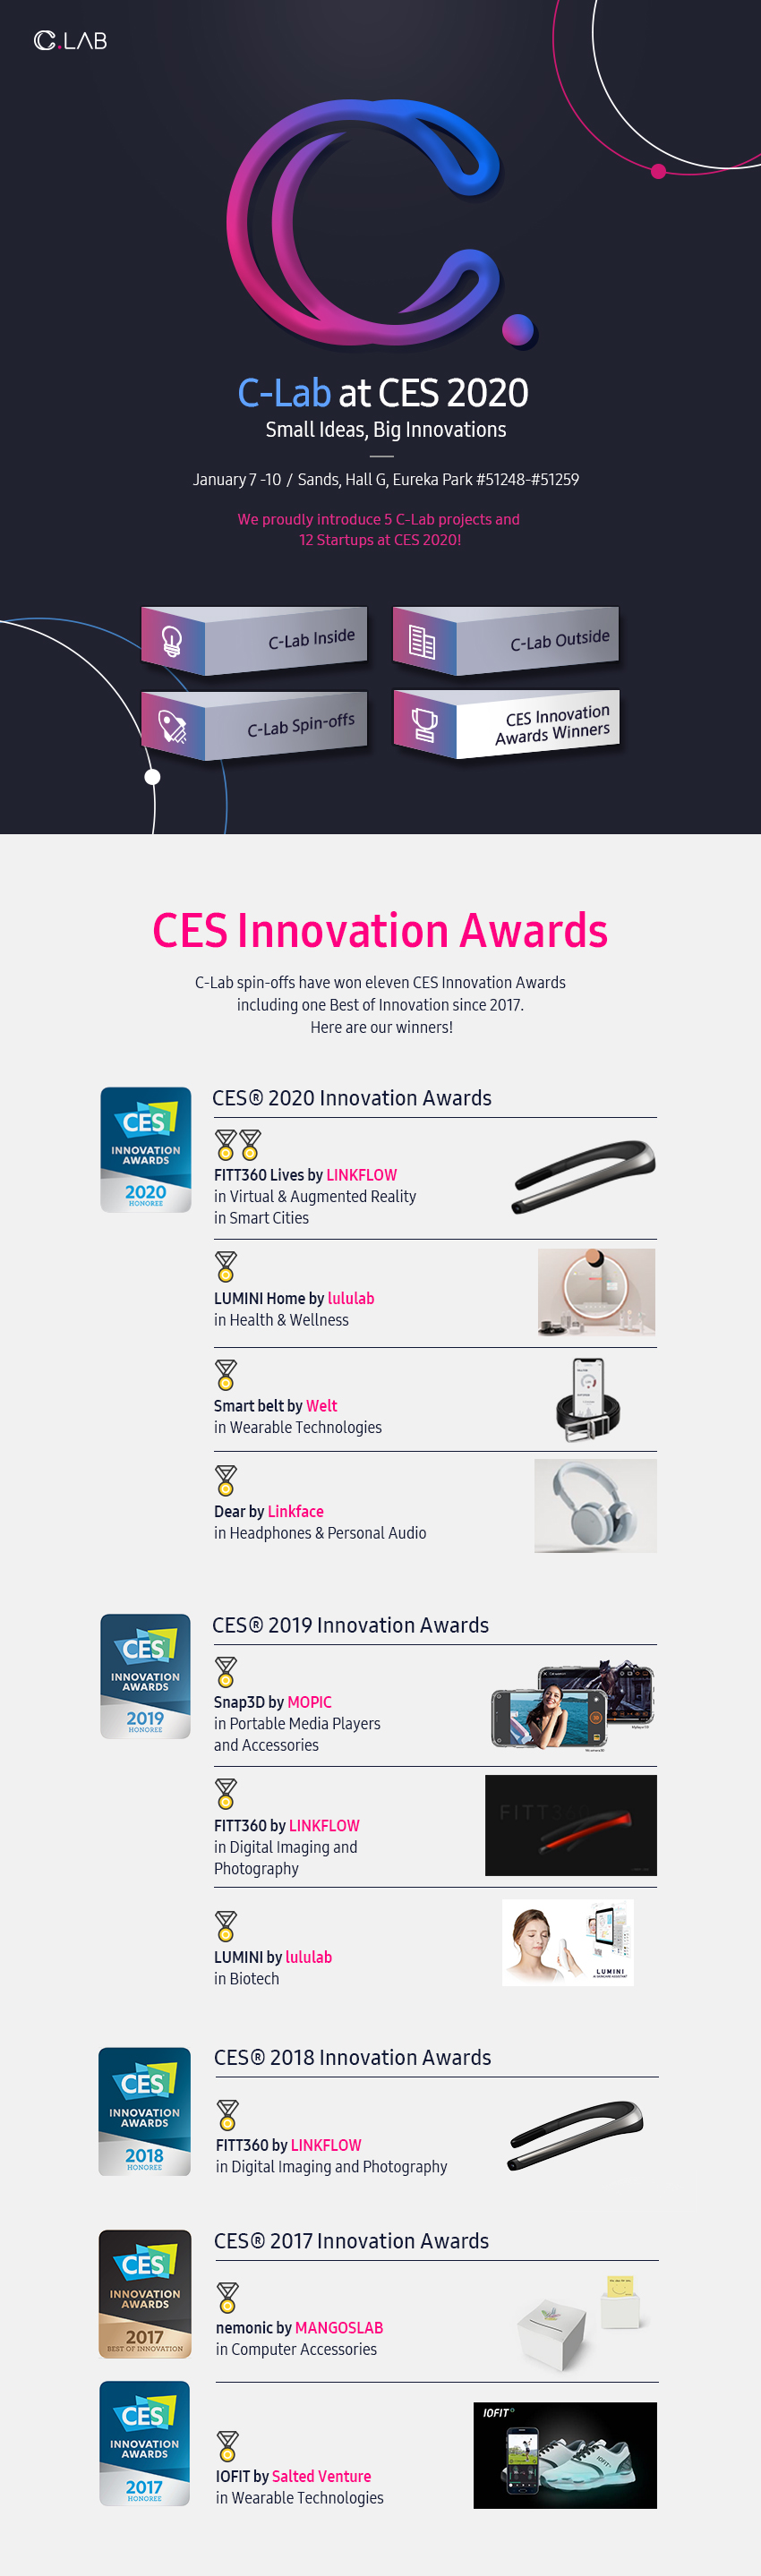 C-Lab at CES 2020. Small Ideas, Big Innovations. January 7-10 / Sands, Hall G, Eureka Park #51248-#51259. We proudly introduce 5 C-Lab projects and 12 Startups at CES 2020! CES Innovation Awards. C-Lab spin-offs have won eleven CES Innovation Awards including one Best of Innovation since 2017. Here are our winners! CES 2020 Innovation Awards. FITT360 Lives by LINKFLOW in Virtual & Augmented Reality in Smart Cities. LUMINI Home by lululab in Health & Wellness. Smart belt by Welt in Wearable Technologies. Dear by Linkface in Headphones & Personal Audio. CES 2019 Innovation Awards. Snap3D by MOPIC in Portable Media Players and Accessories. FITT360 by LINKFLOW in Digital Imaging and Photography. LUMINI by lululab in Biotech. CES 2018 Innovation Awards. FITT360 by LINKFLOW in Digital Imaging and Photography. CES 2017 Innovation Awards. Nemonic by MANGOSLAB in Computer Accessories. IOFIT by Salted Venture in Wearable Technologies.